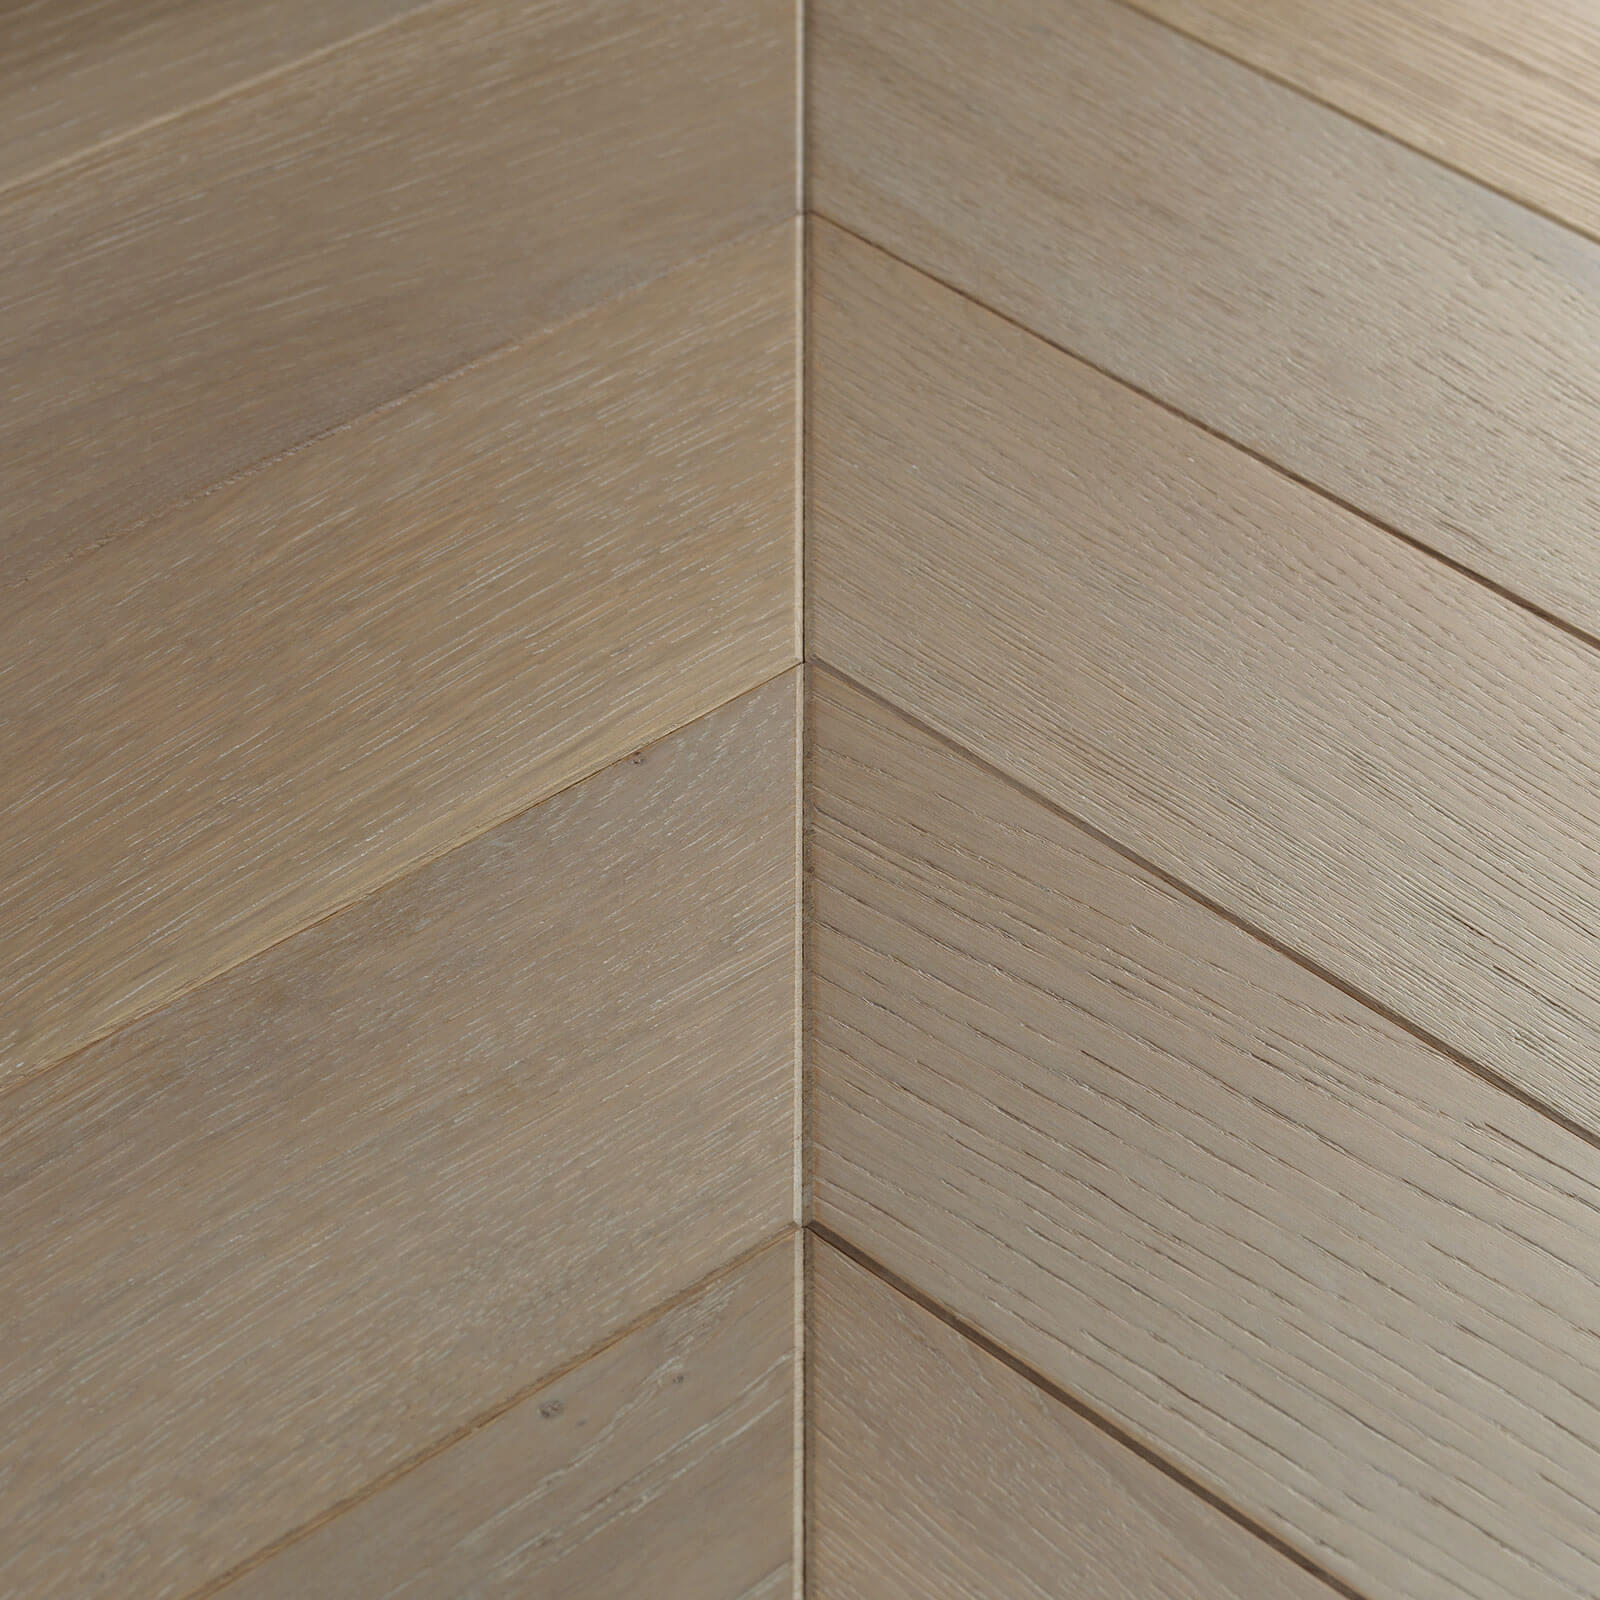 Woodpecker Goodrich Chevron Haze Oak Brushed & Matt Lacquered Engineered Wood Flooring 32-CGR-001